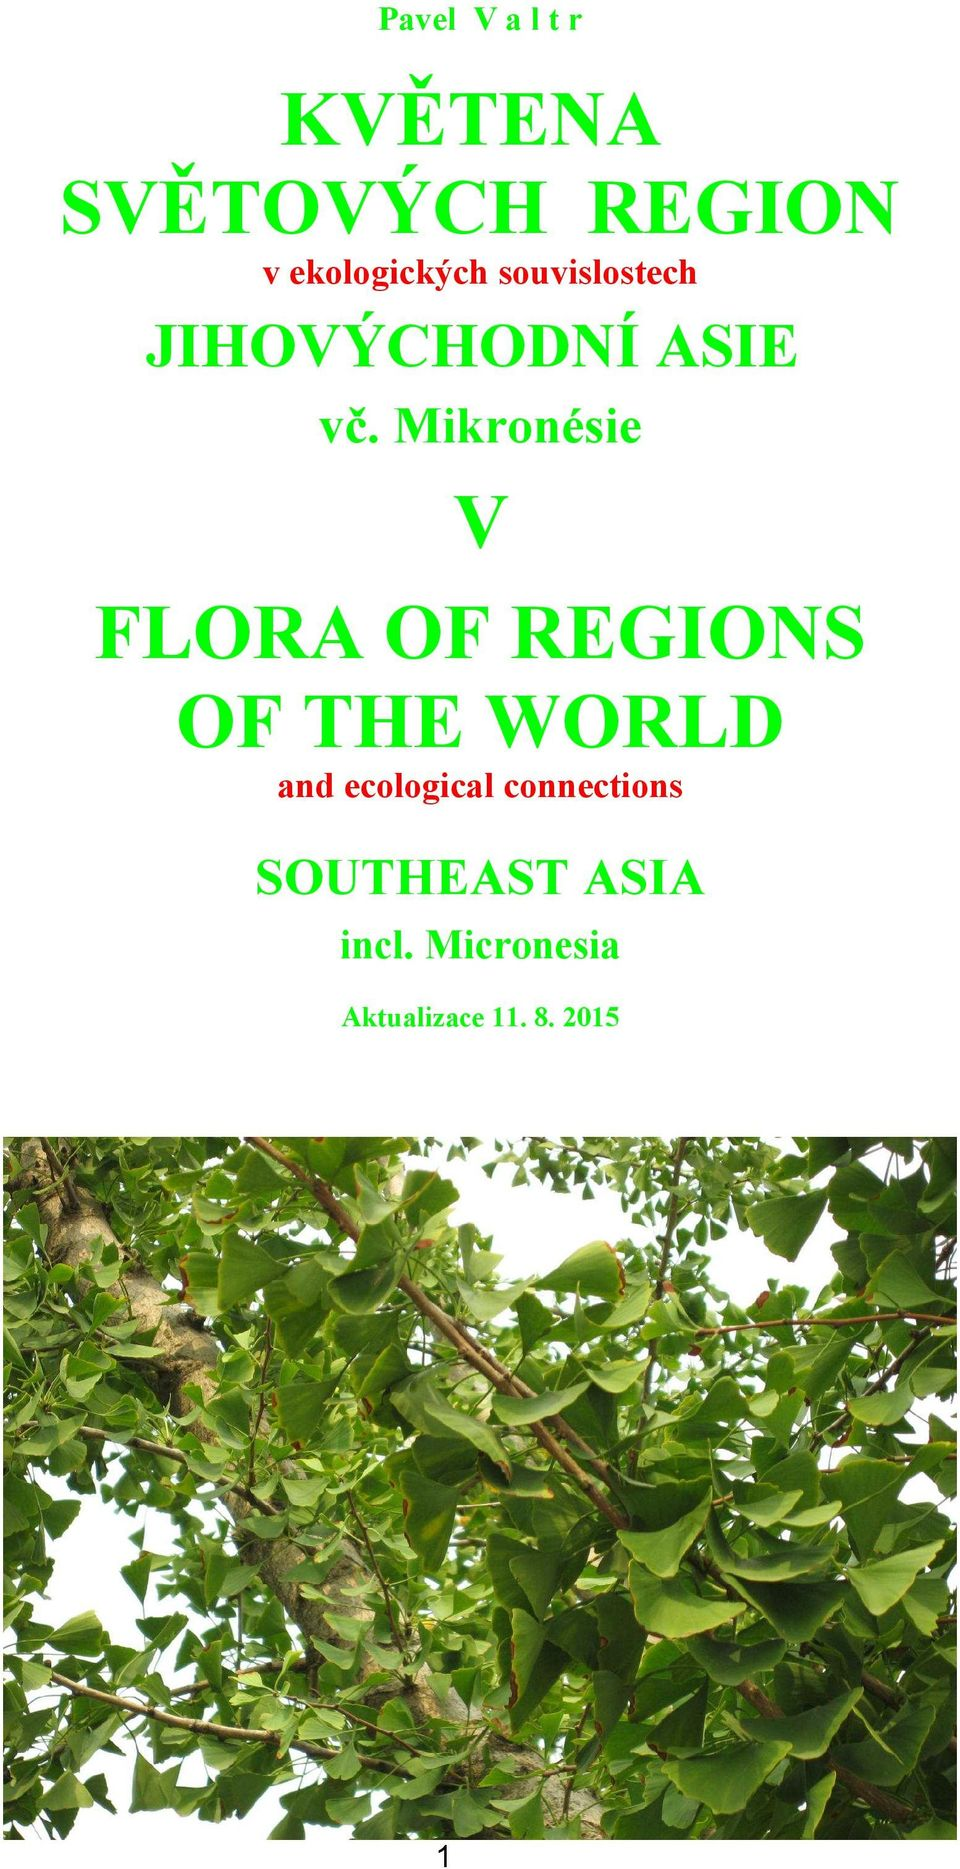 Mikronésie V FLORA OF REGIONS OF THE WORLD and